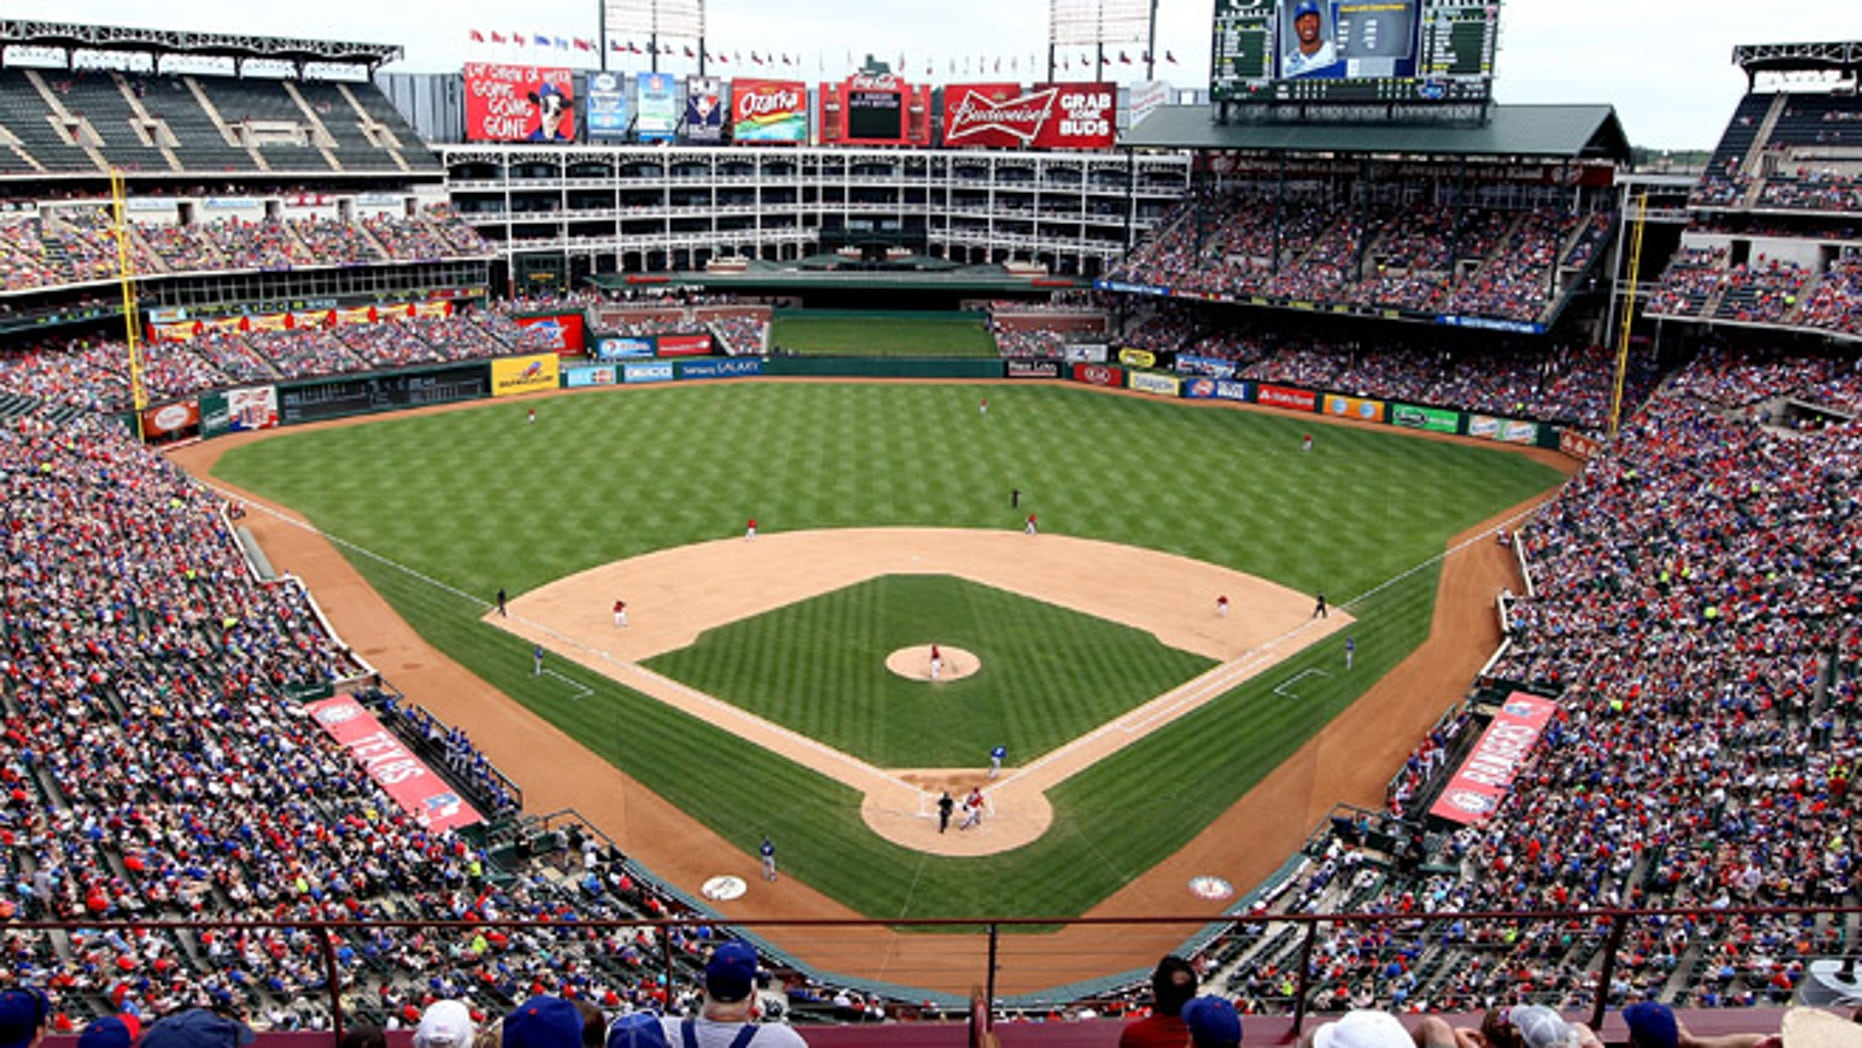 ARLINGTON, TX - JUNE 1: A general view of the baseball field during the game between the Kansas City Royals and the Texas Rangers at Rangers Ballpark in Arlington on June 1, 2013 in Arlington, Texas. (Photo by Rick Yeatts/Getty Images)